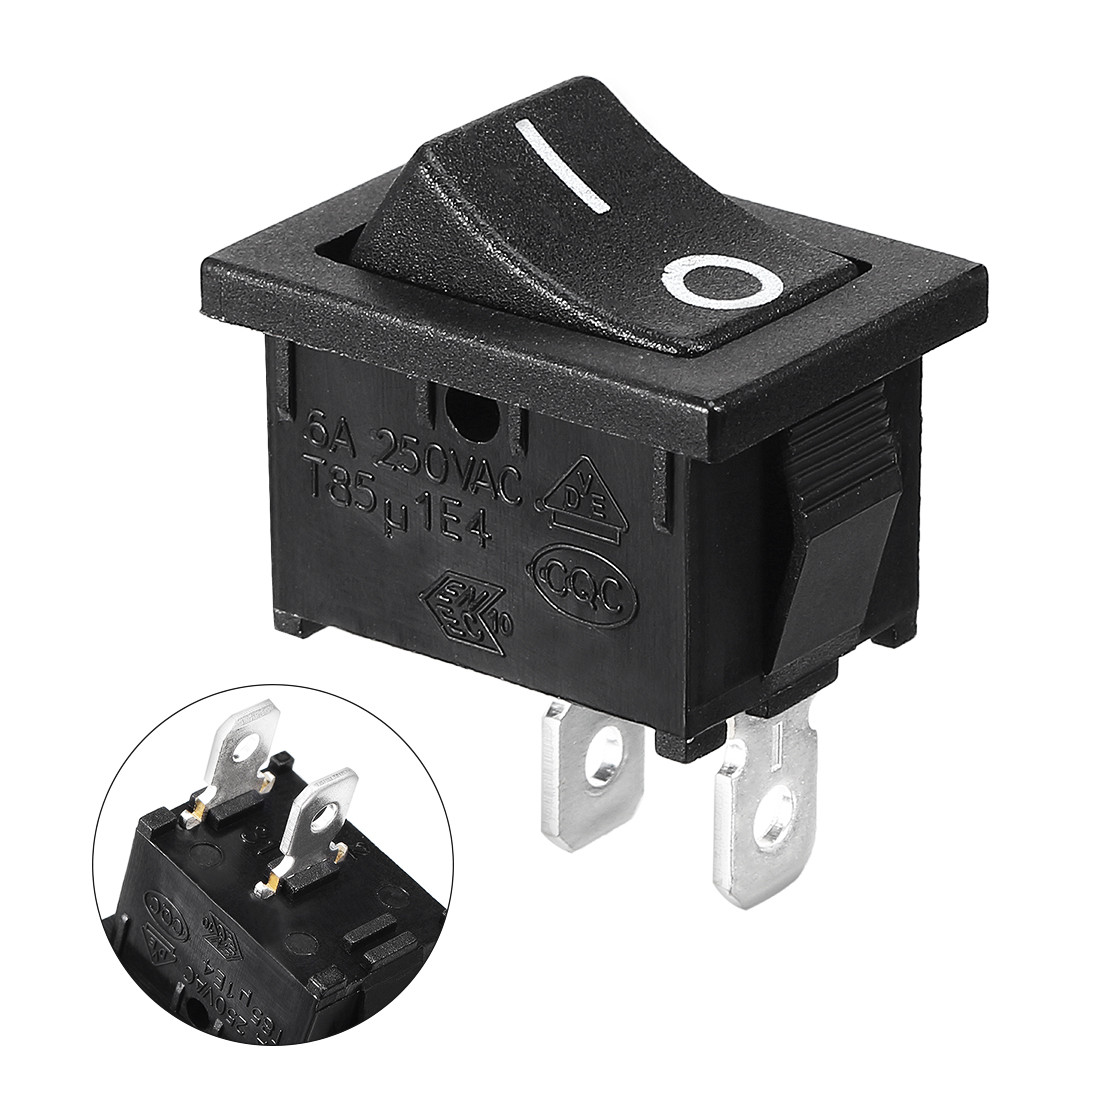 AC 10A/125V 6A/250V ON-OFF I/O 2Position SPST 2Pin Rocker Switch